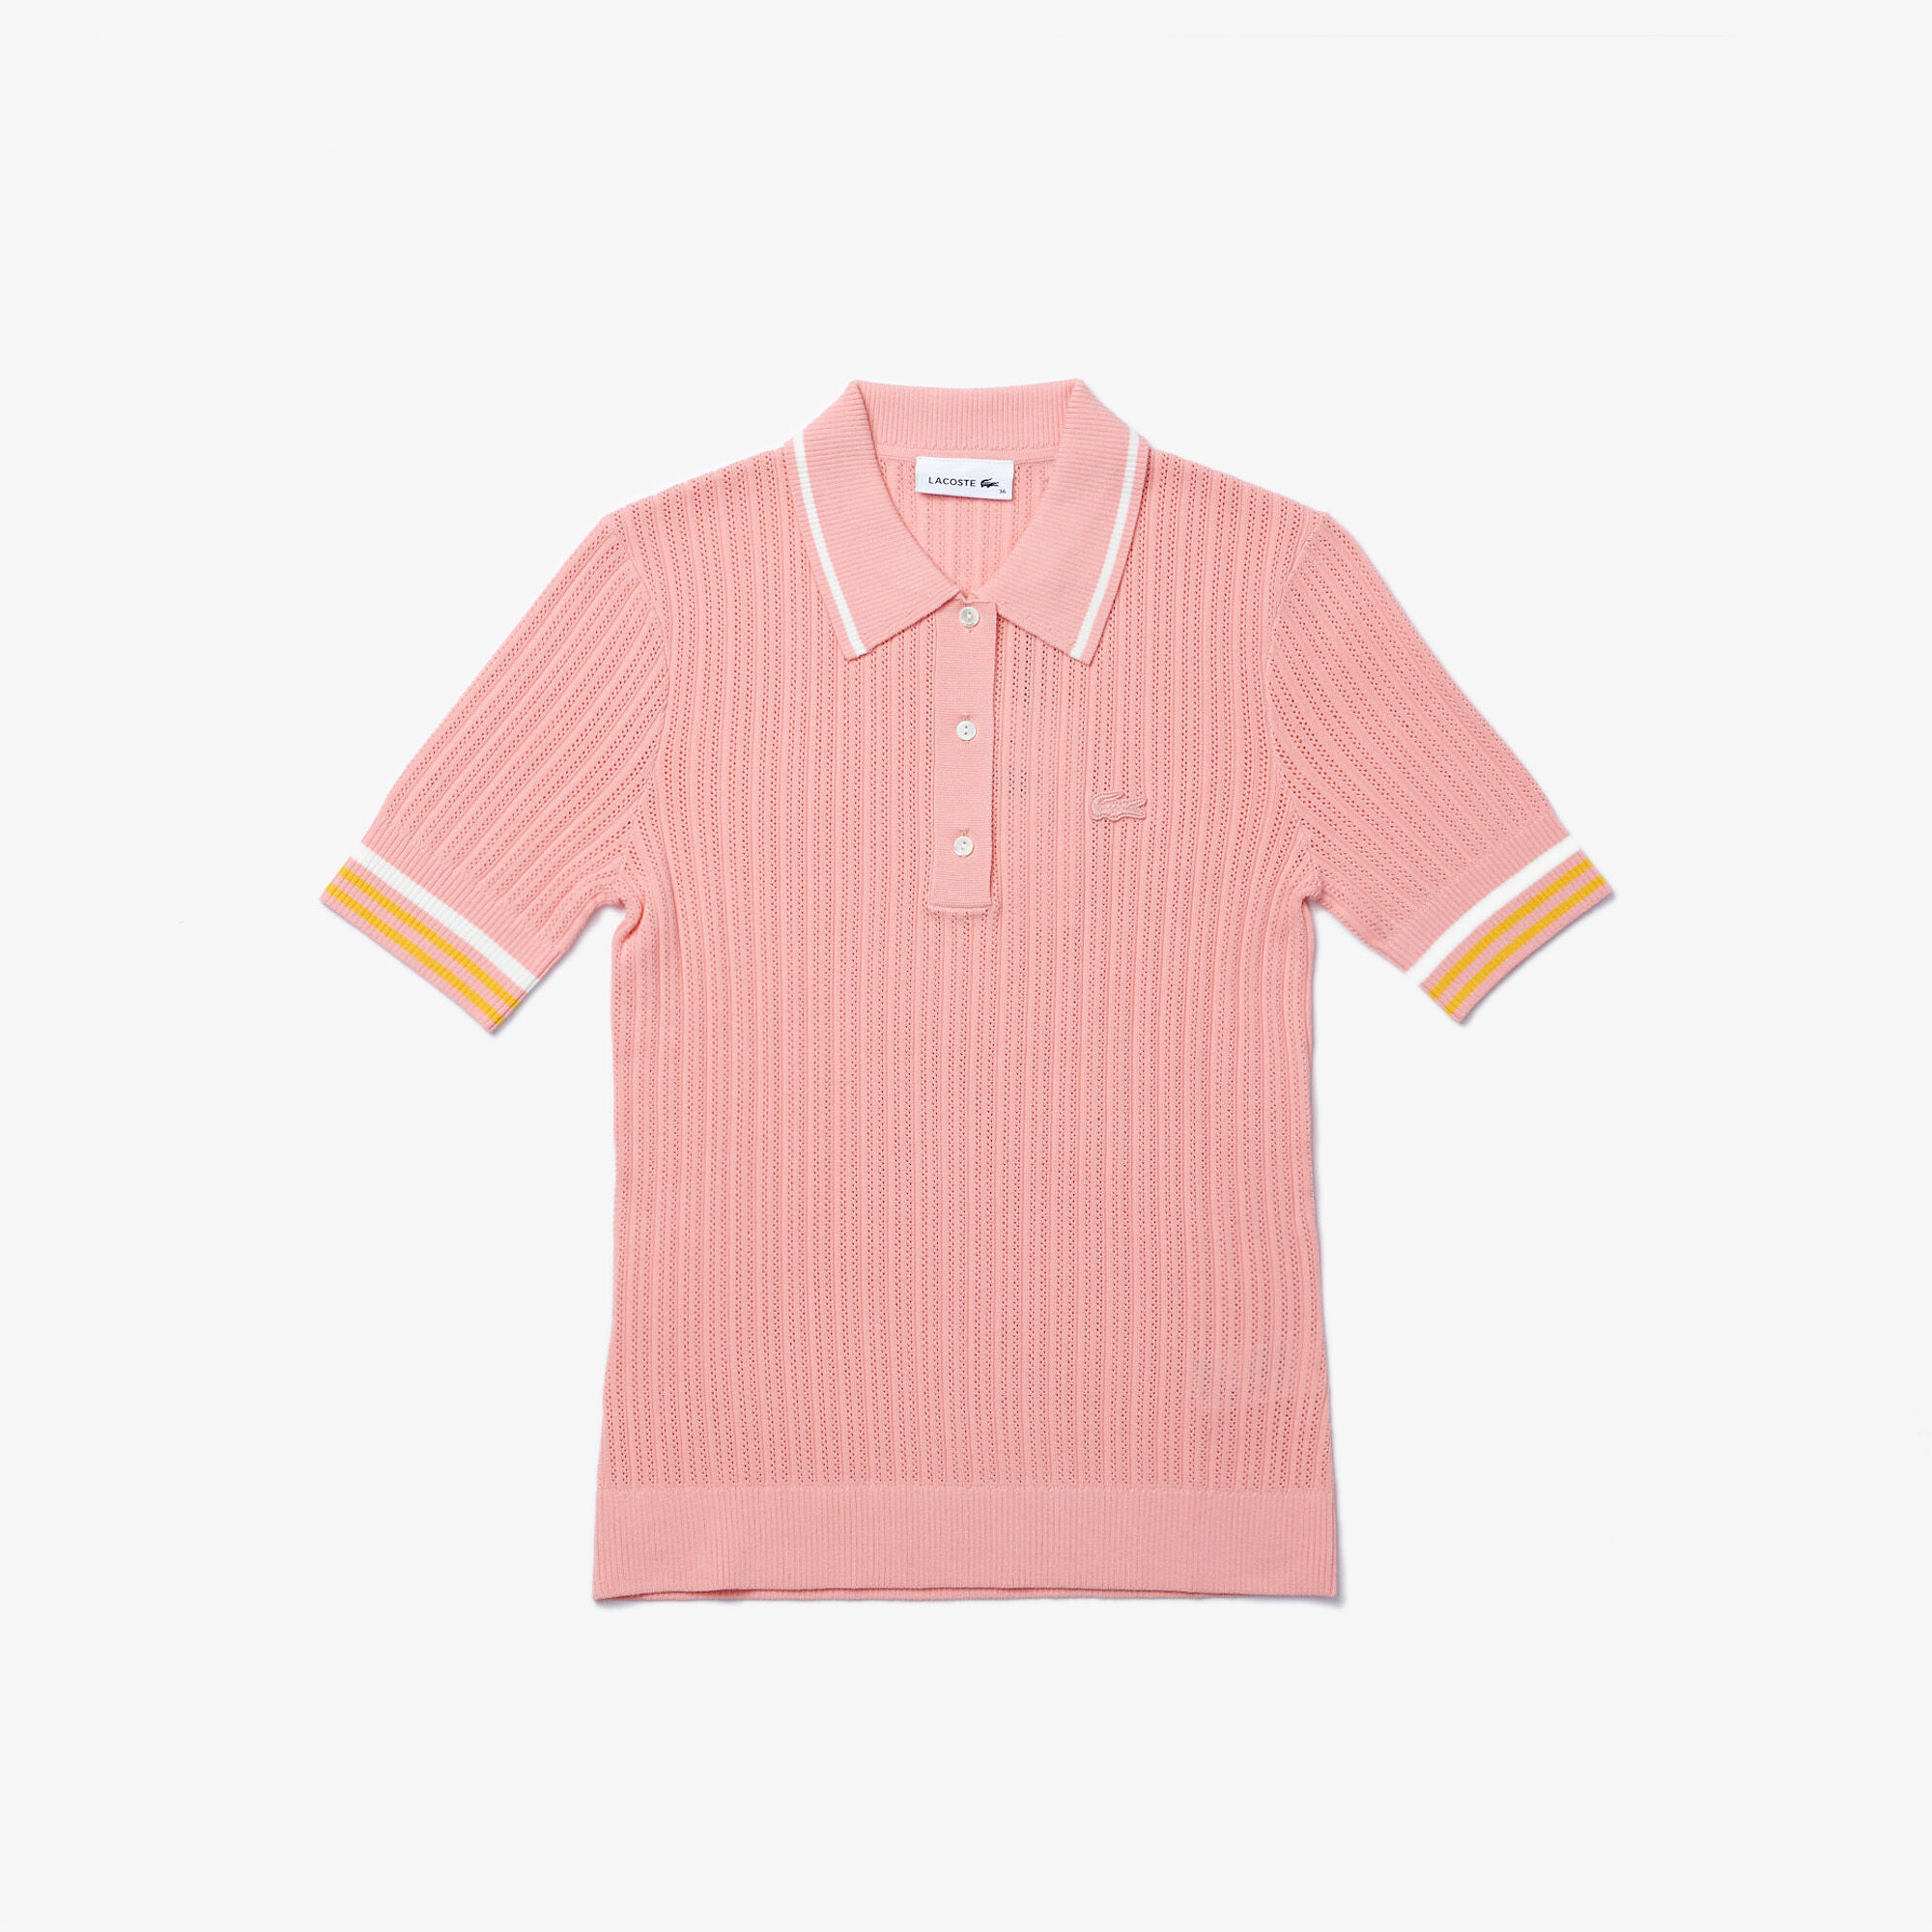 Women's Lacoste Slim Fit Striped Sleeve Knit Polo Shirt